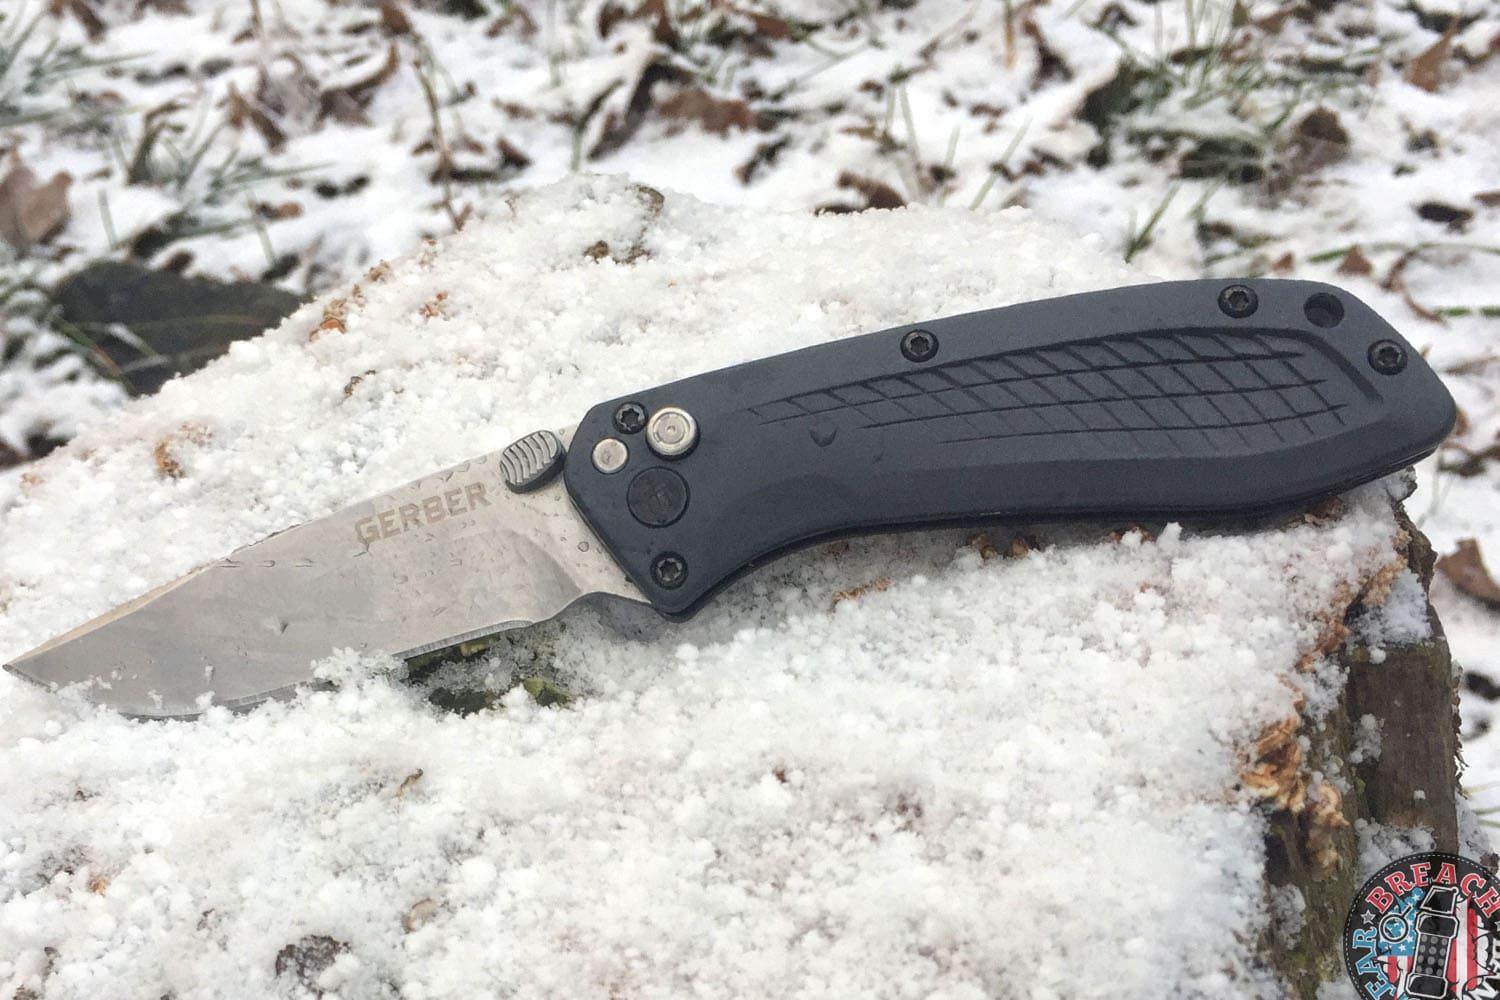 gerber_US-Assist02